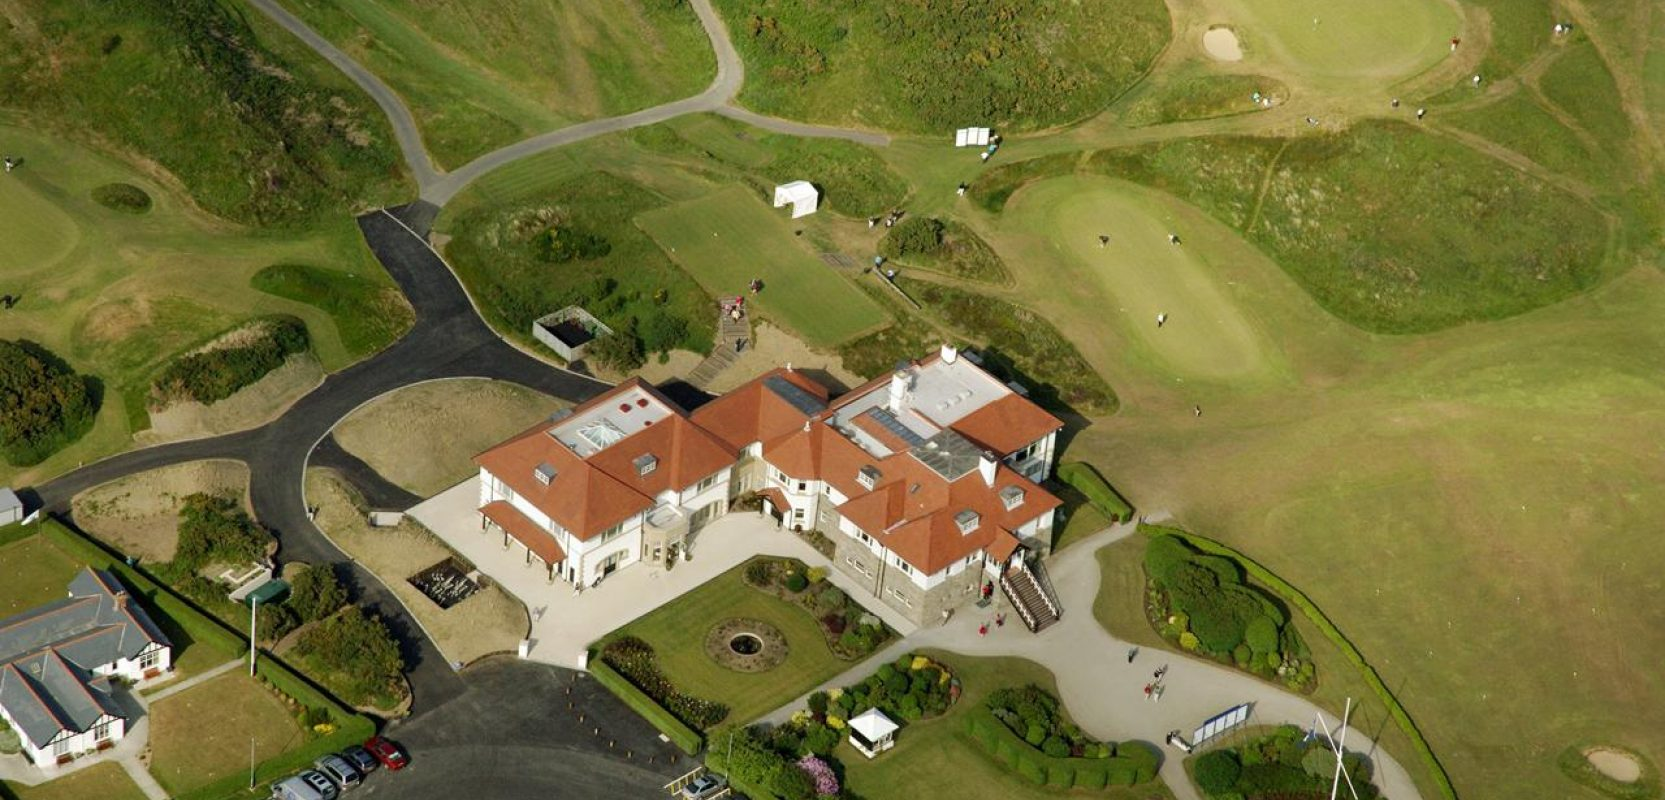 Images of Royal County Down Golf Course project